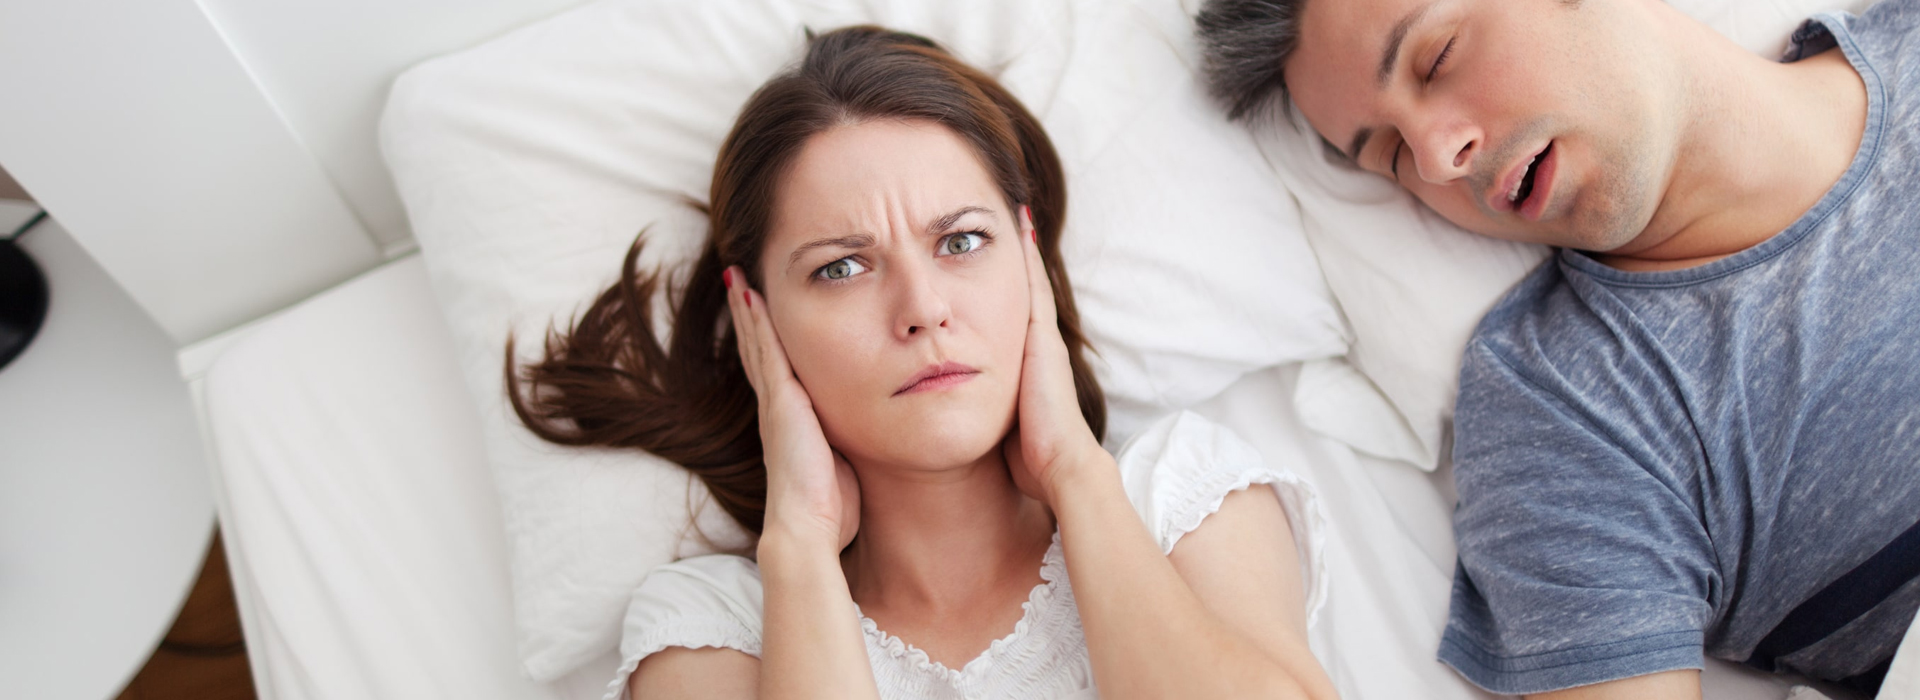 Sleep Apnea Treatment: How to Fight the Disorder